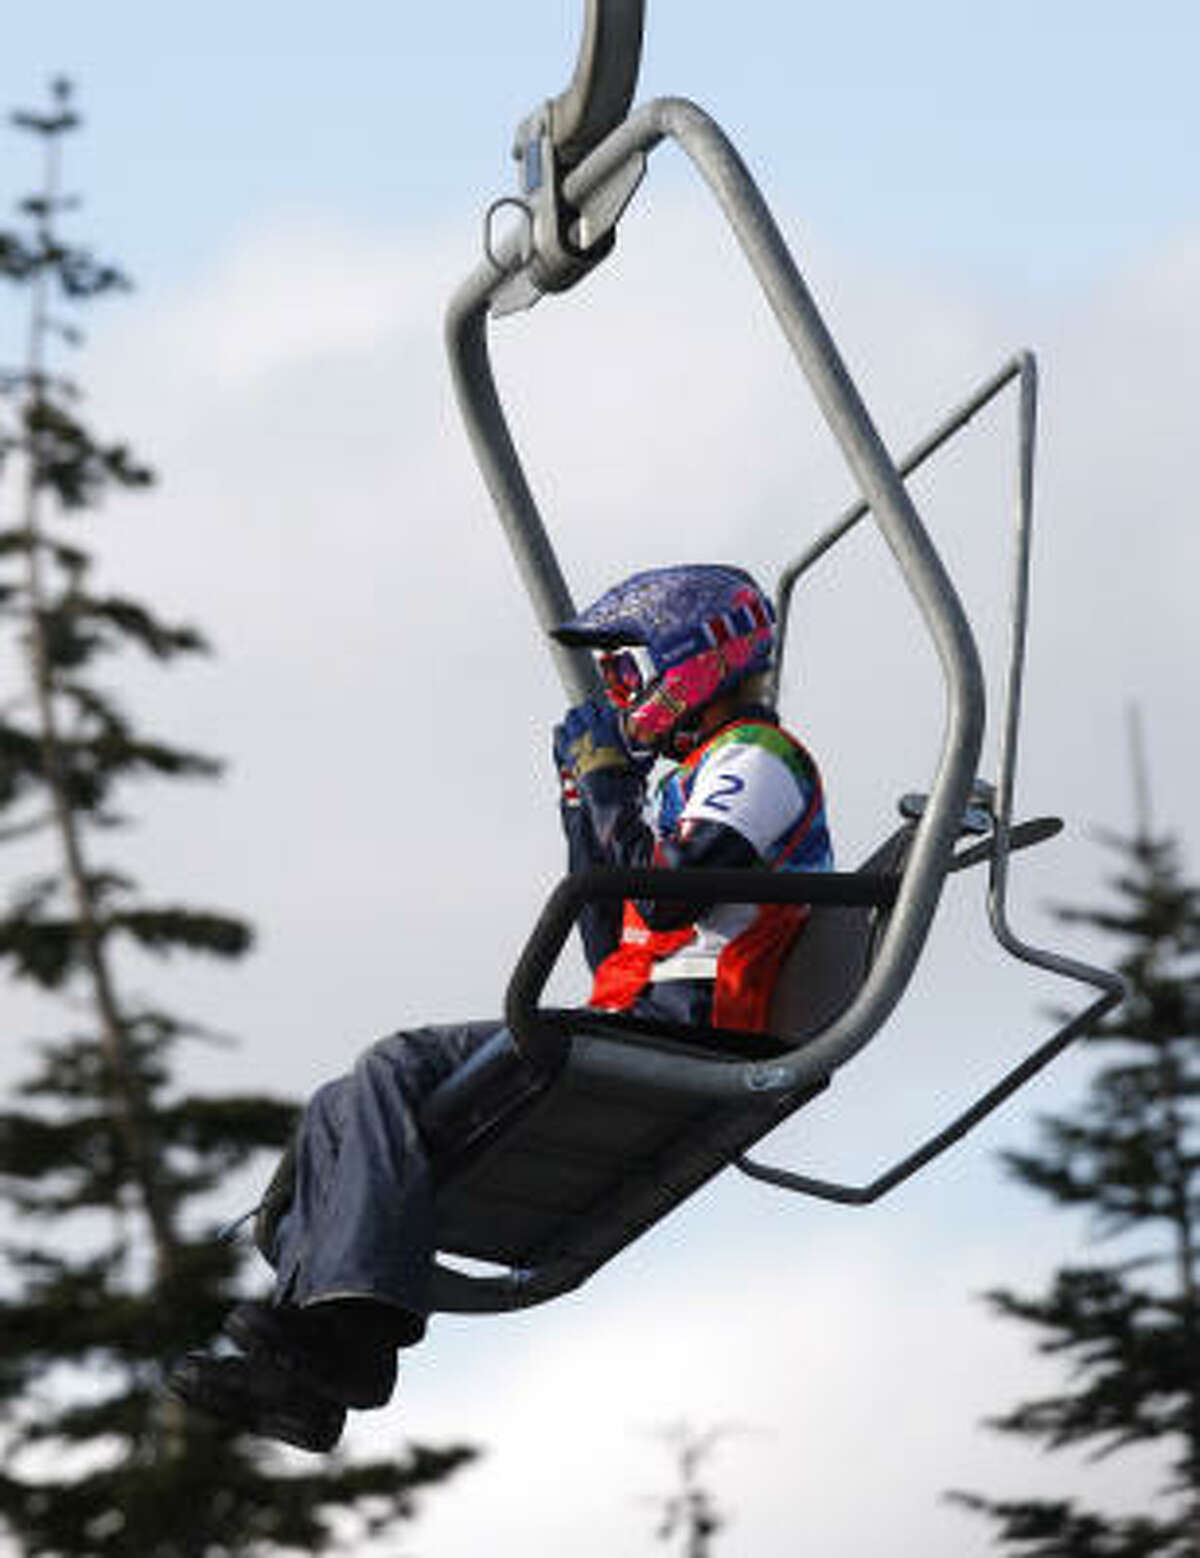 After losing out on a chance to race for a medal, Lindsey Jacobellis rides the chair lift up to the top to compete in the consolation race.